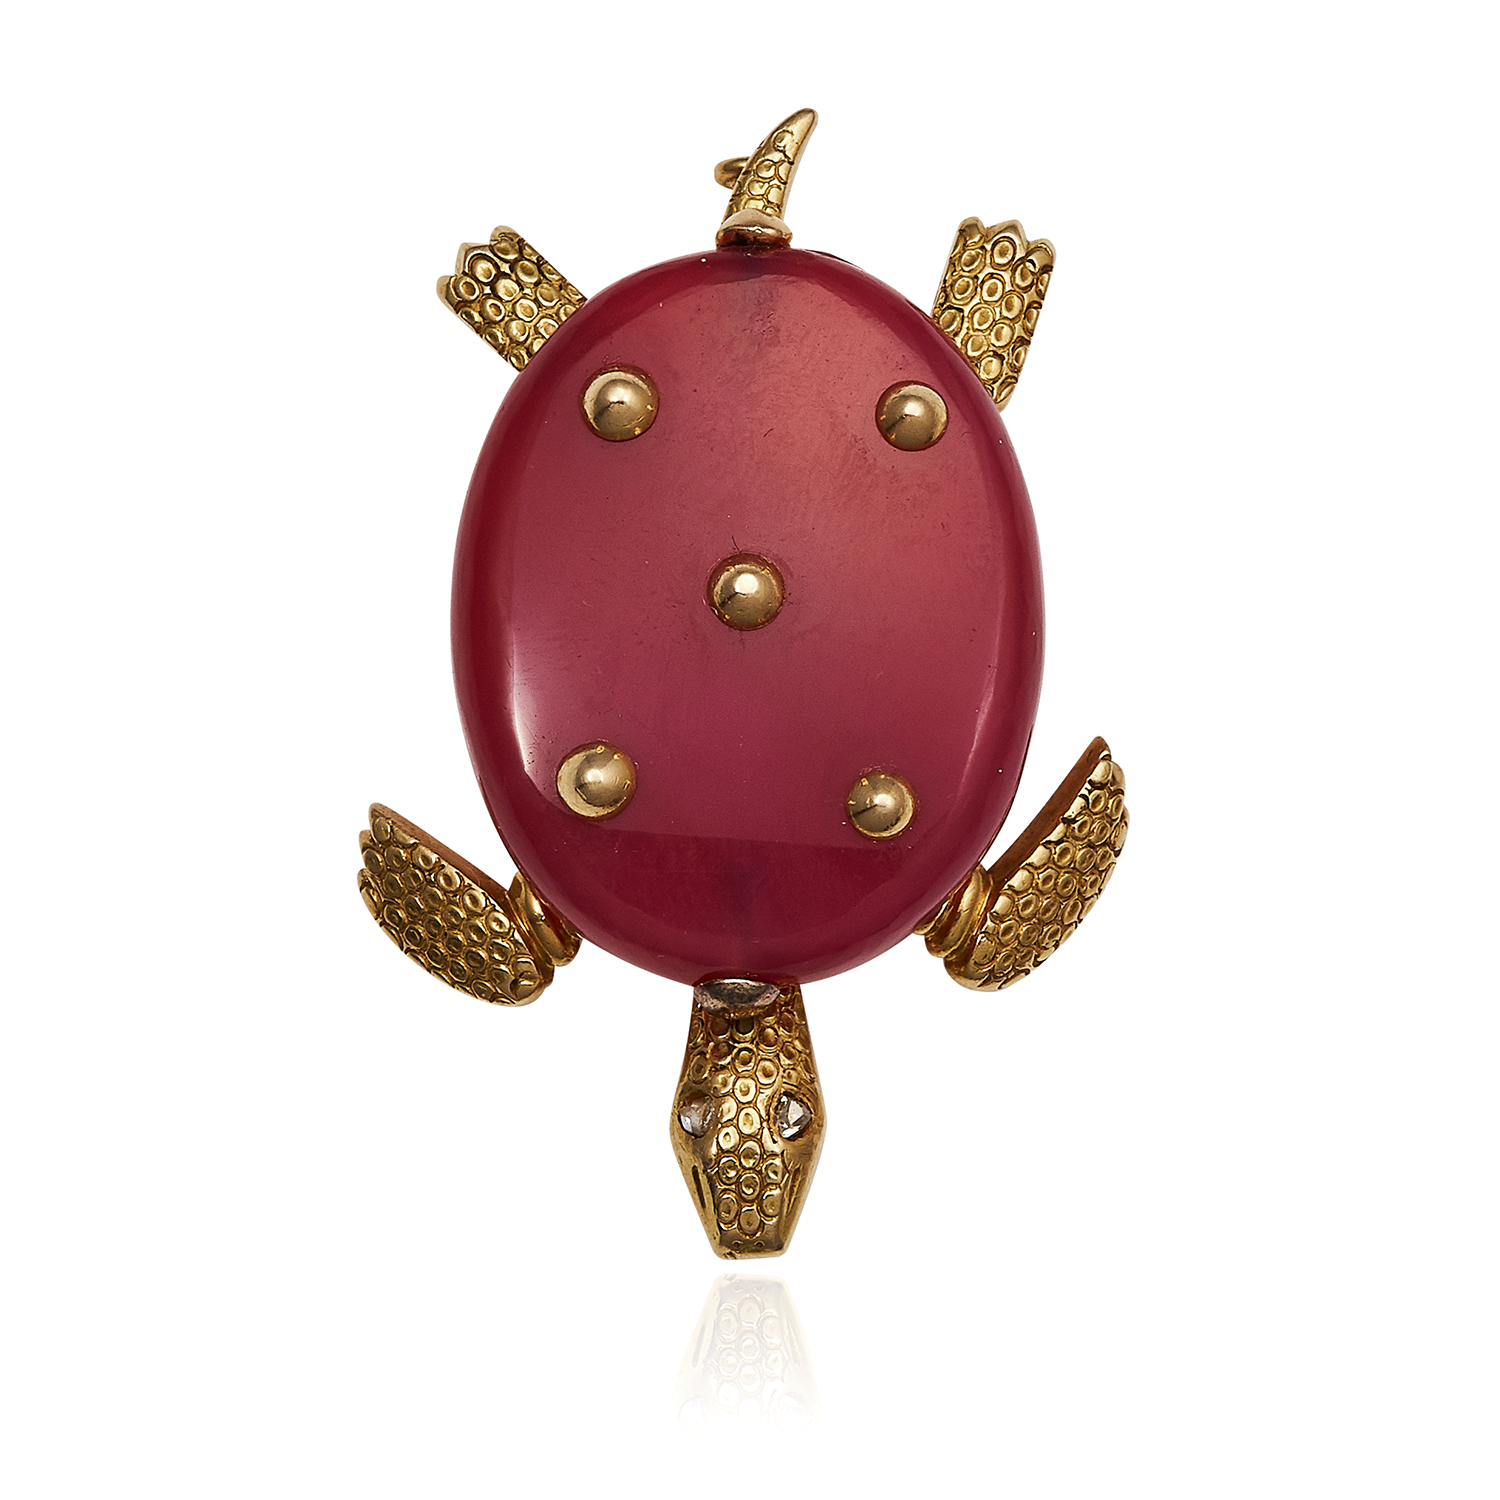 Los 54 - A DIAMOND AND CARNELIAN TURTLE BROOCH, CARTIER CIRCA 1950 in 18ct yellow gold deigned as a turtle,